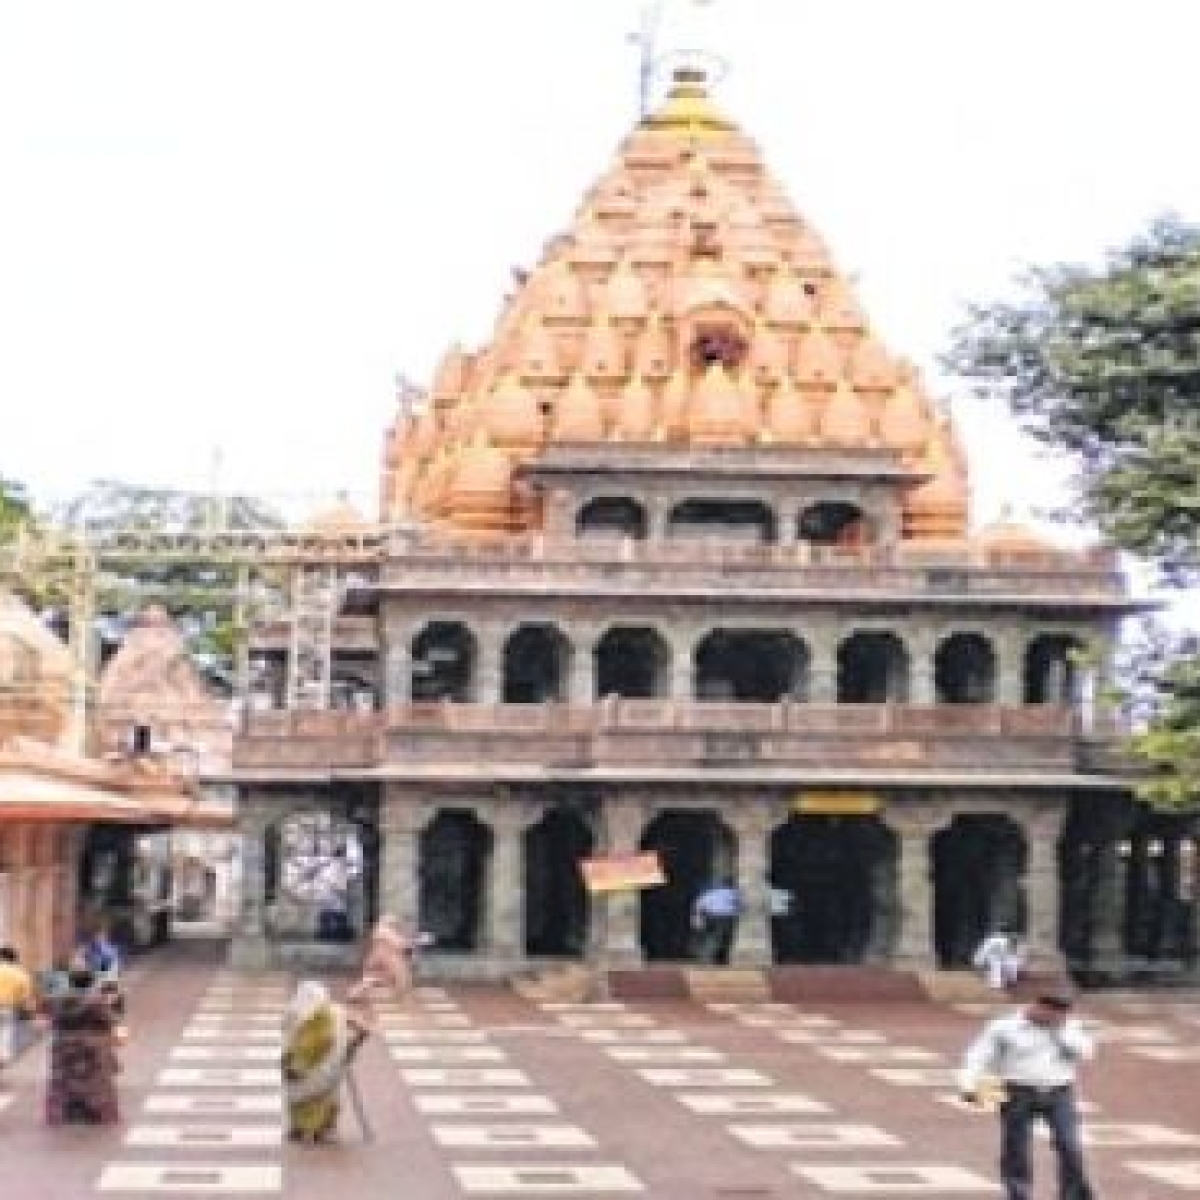 Ujjain: MTMC cancels all online bookings, bans entry in Mahakal temple after 8 pm from tomorrow